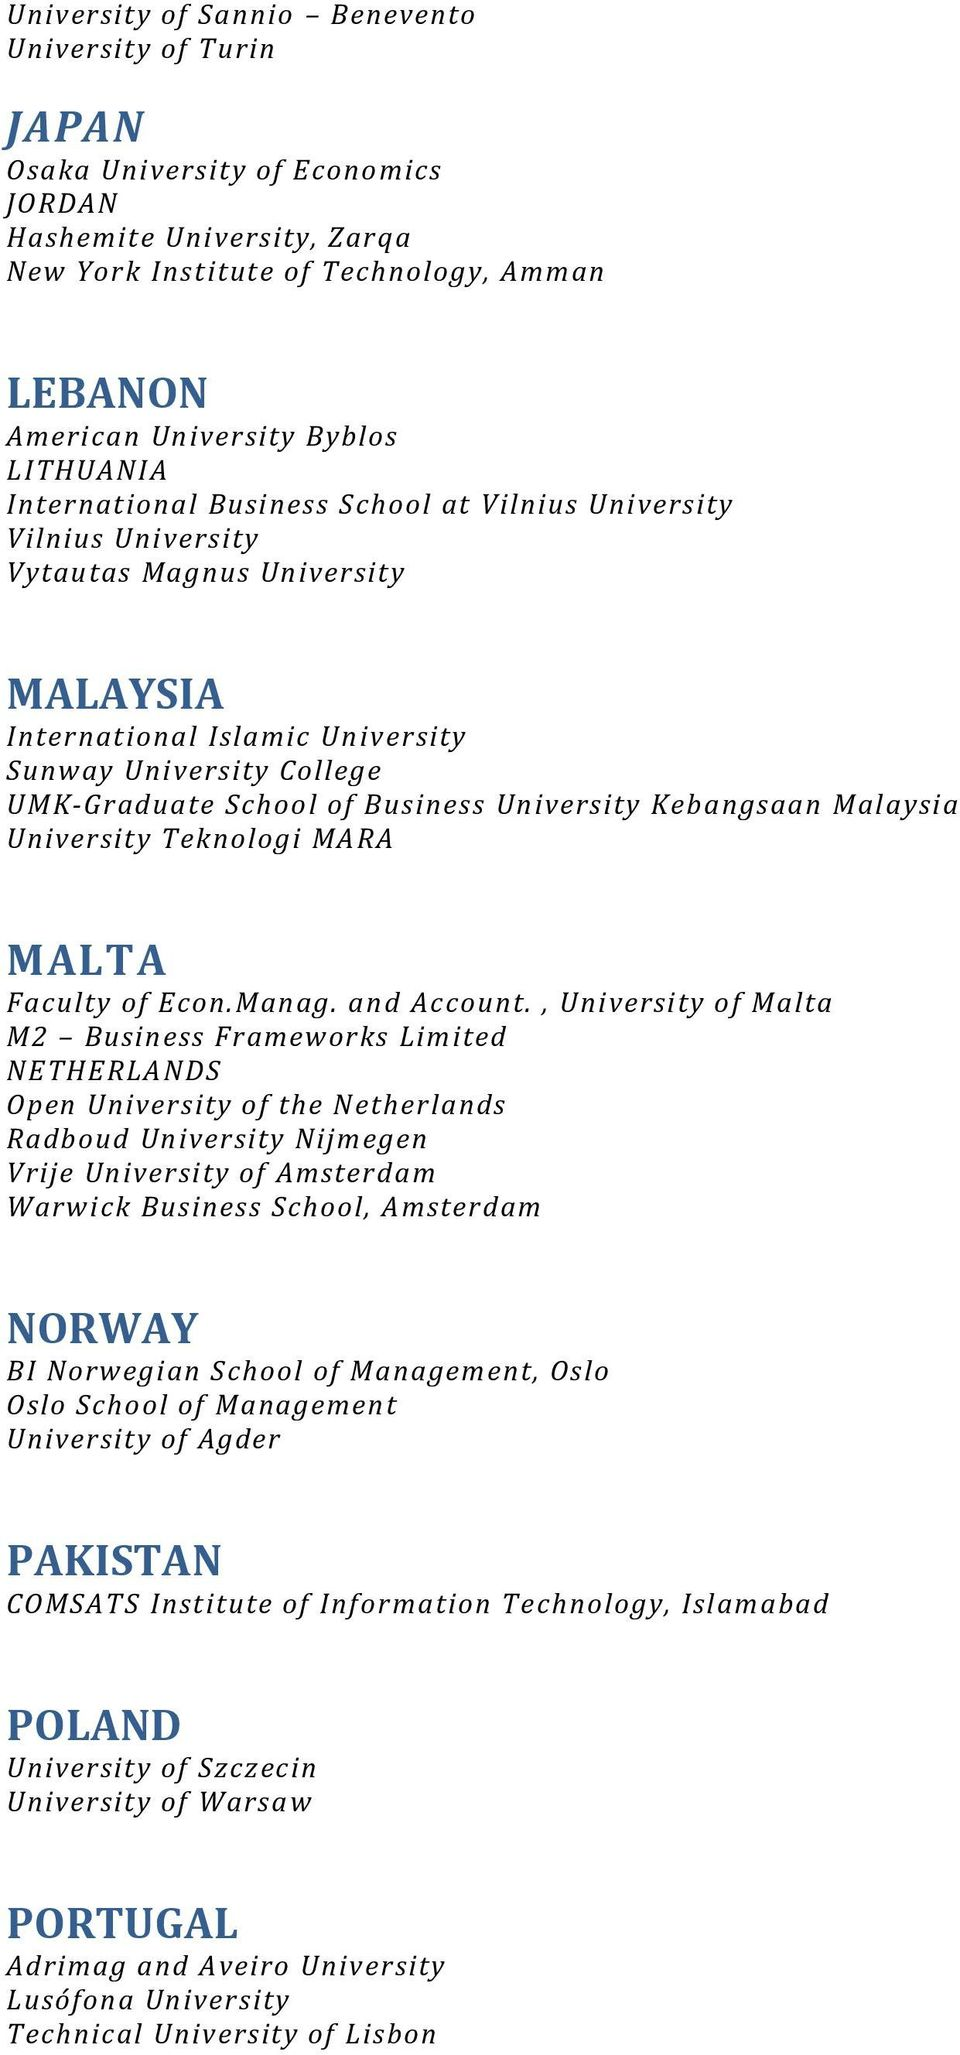 Business University Kebangsaan Malaysia University Teknologi MARA MALTA Faculty of Econ.Manag. an d Account.